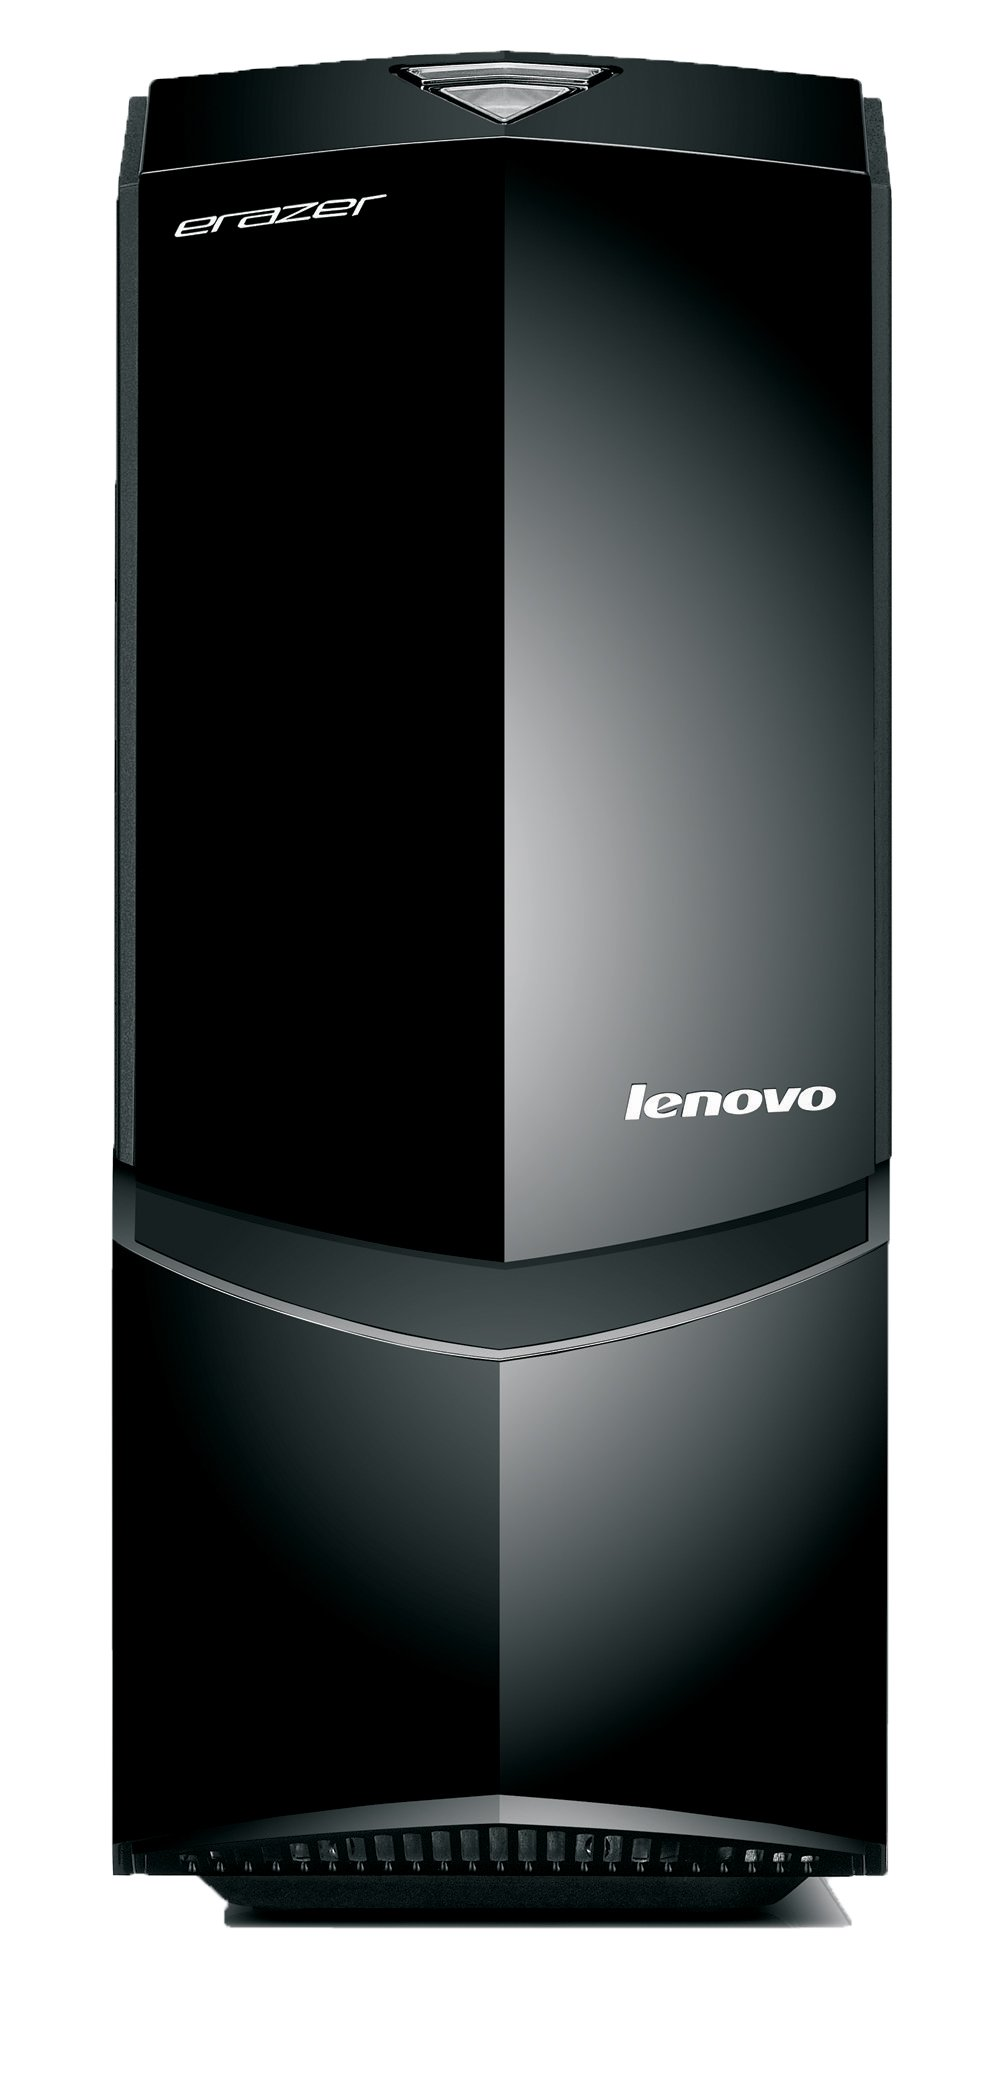 Lenovo Erazer X510 Tower Desktop with Intel Core i7-4770K / 16GB / 2TB / Win 8.1 / 4GB Video